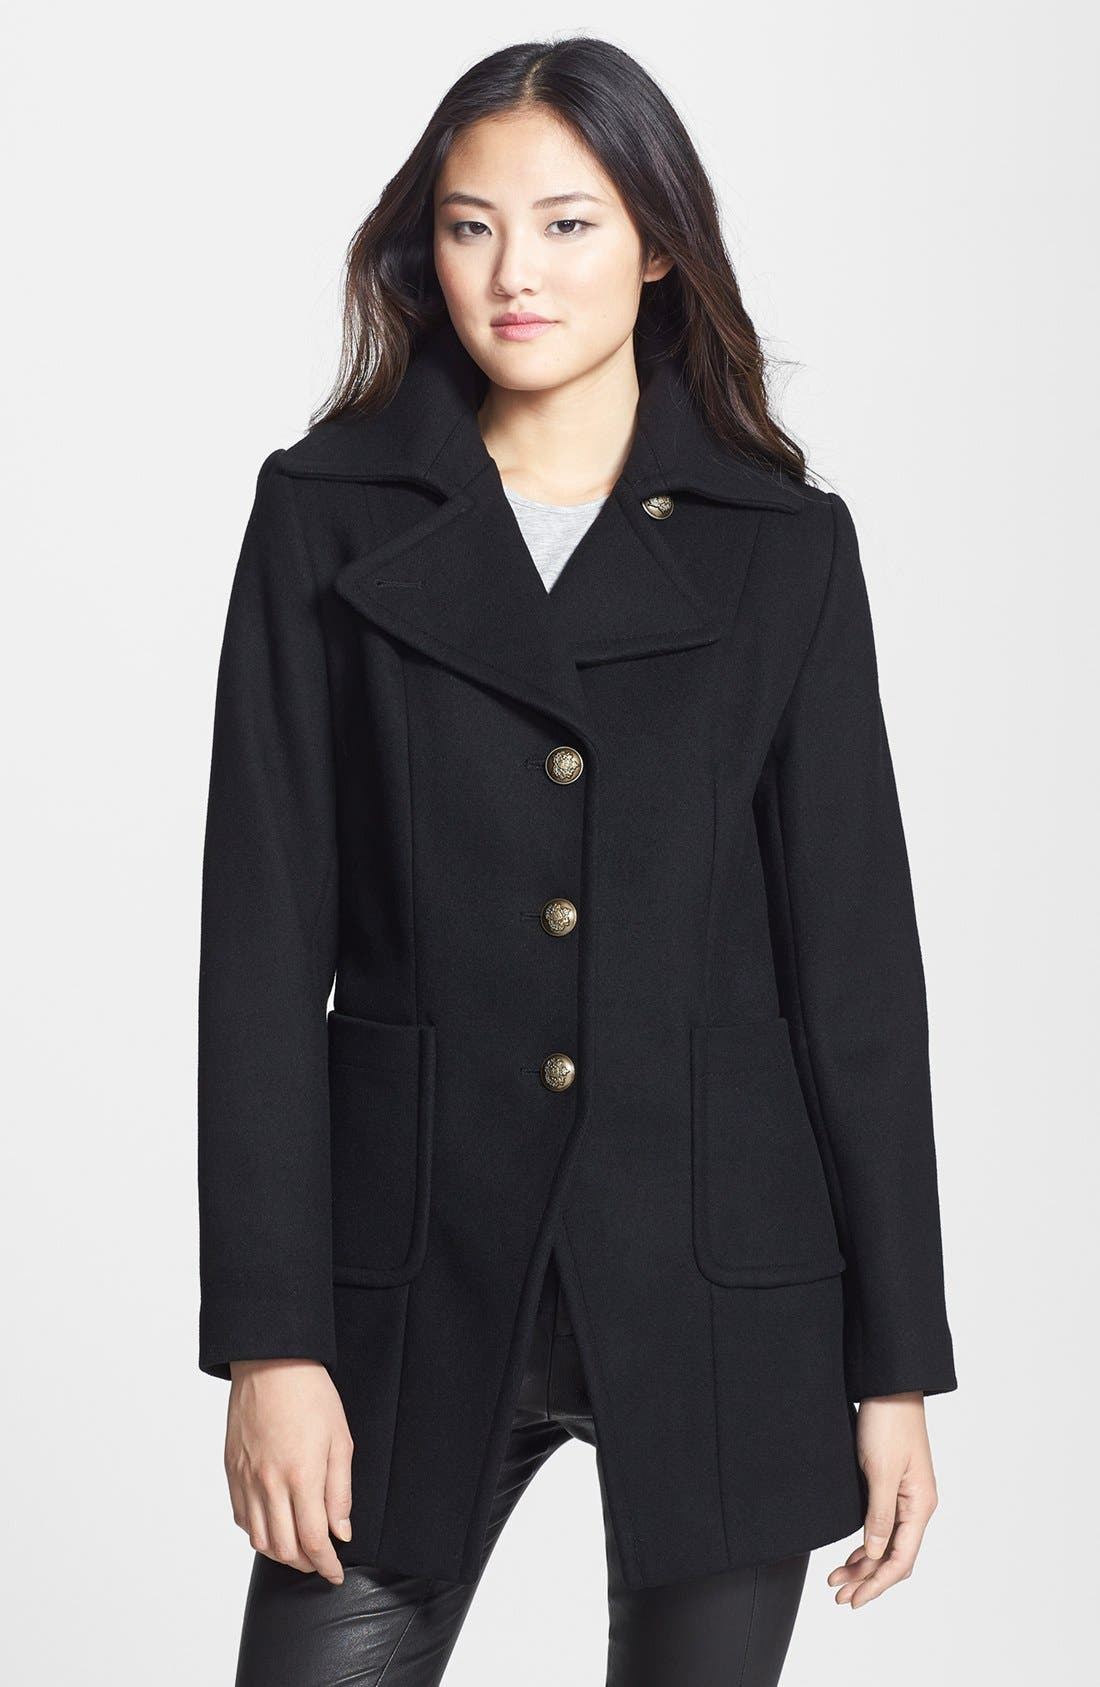 Alternate Image 1 Selected - Kristen Blake Single Breasted Wool Blend Walking Coat (Nordstrom Exclusive)